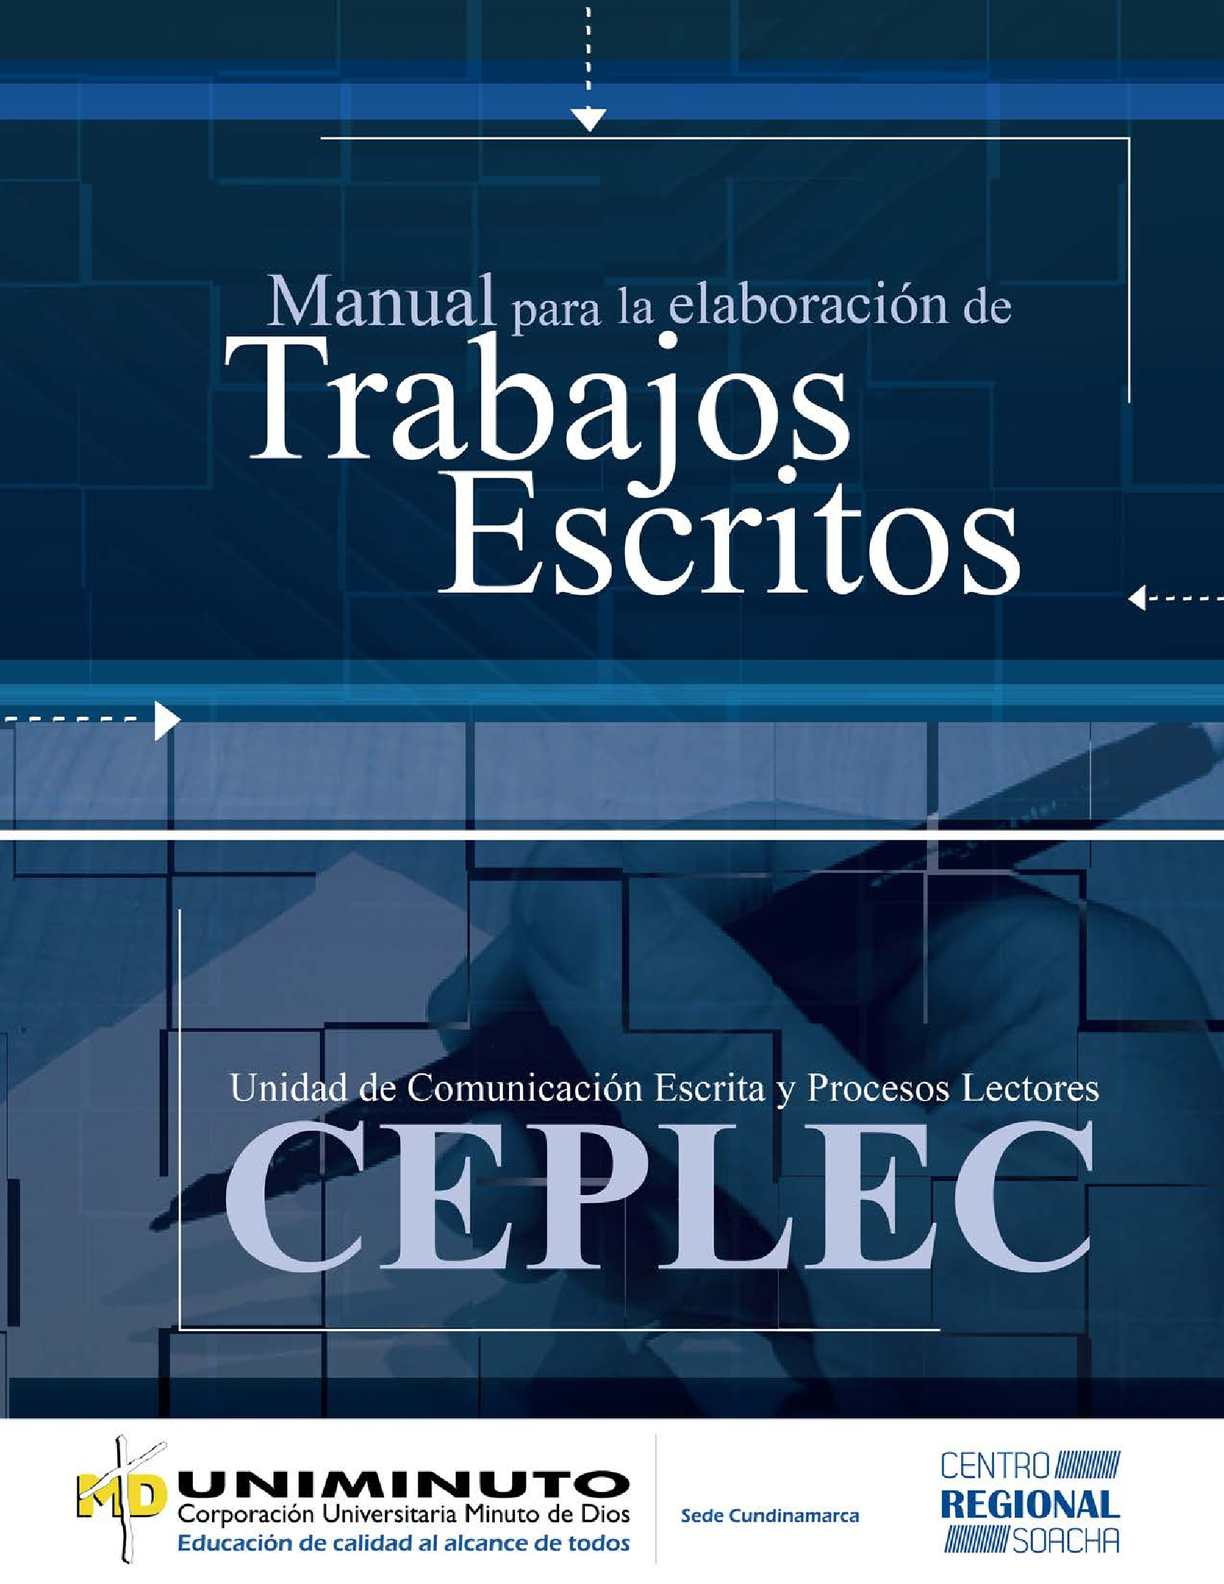 Calam o manual de trabajos escritos versi n final 2 for Manual de acuicultura pdf